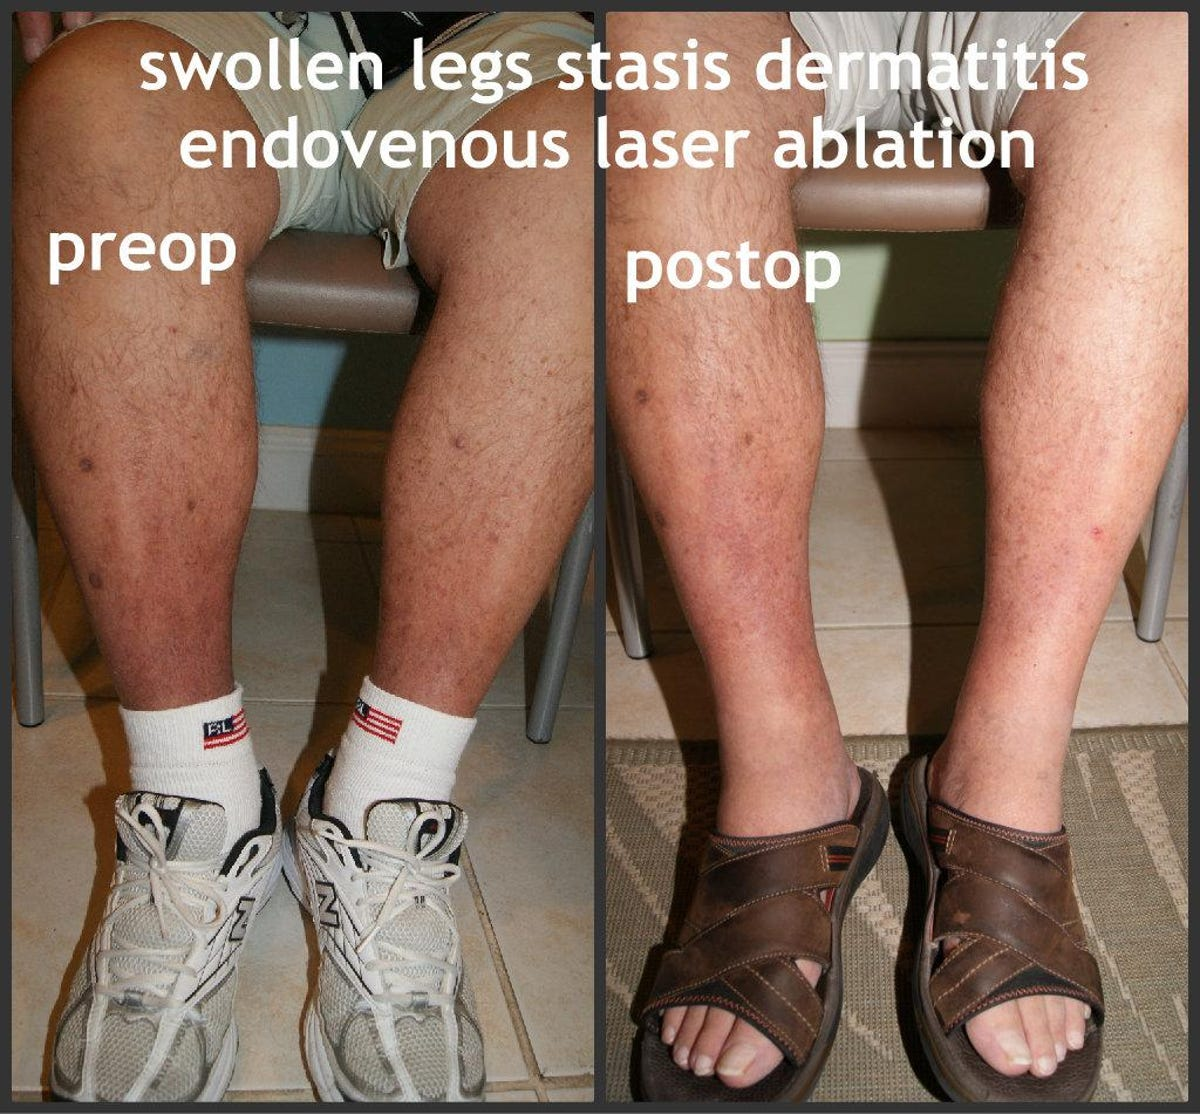 Wound won't heal? Could be venous insufficiency